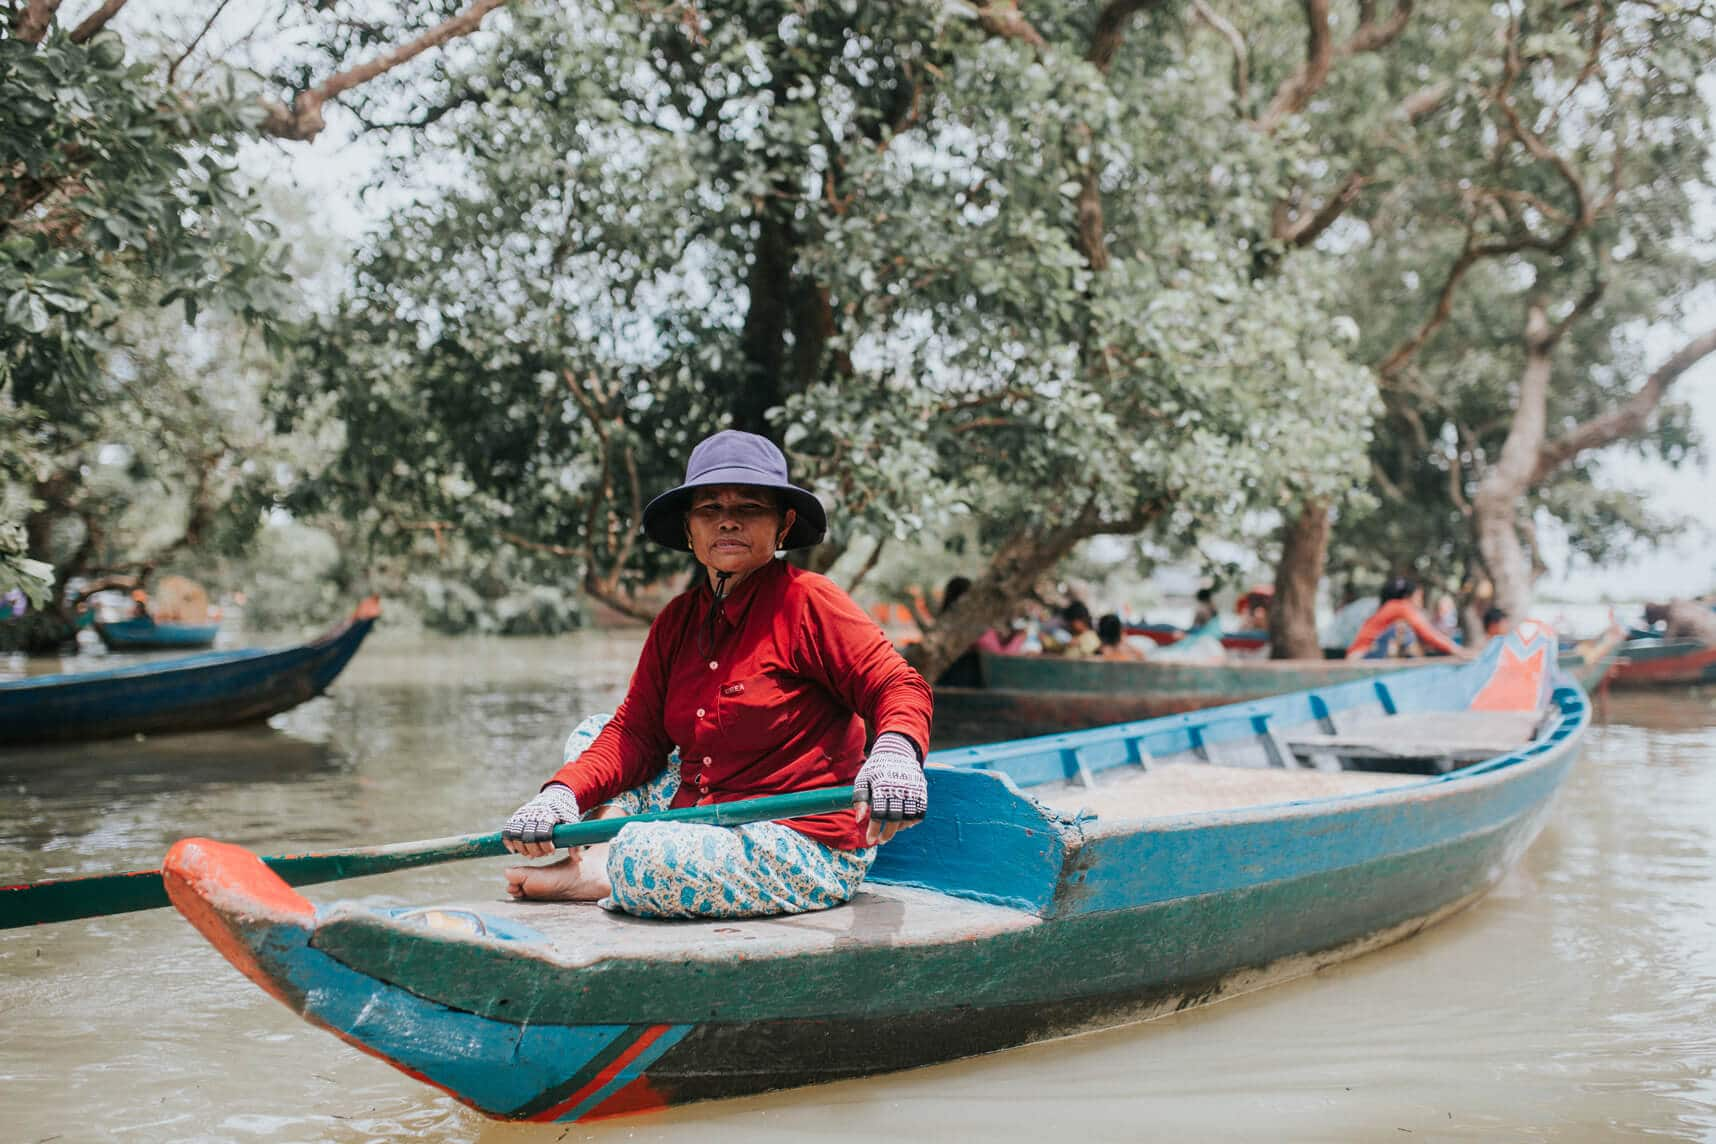 Cambodia photography - Kompong Pluk's flooded forest - Woman in boat